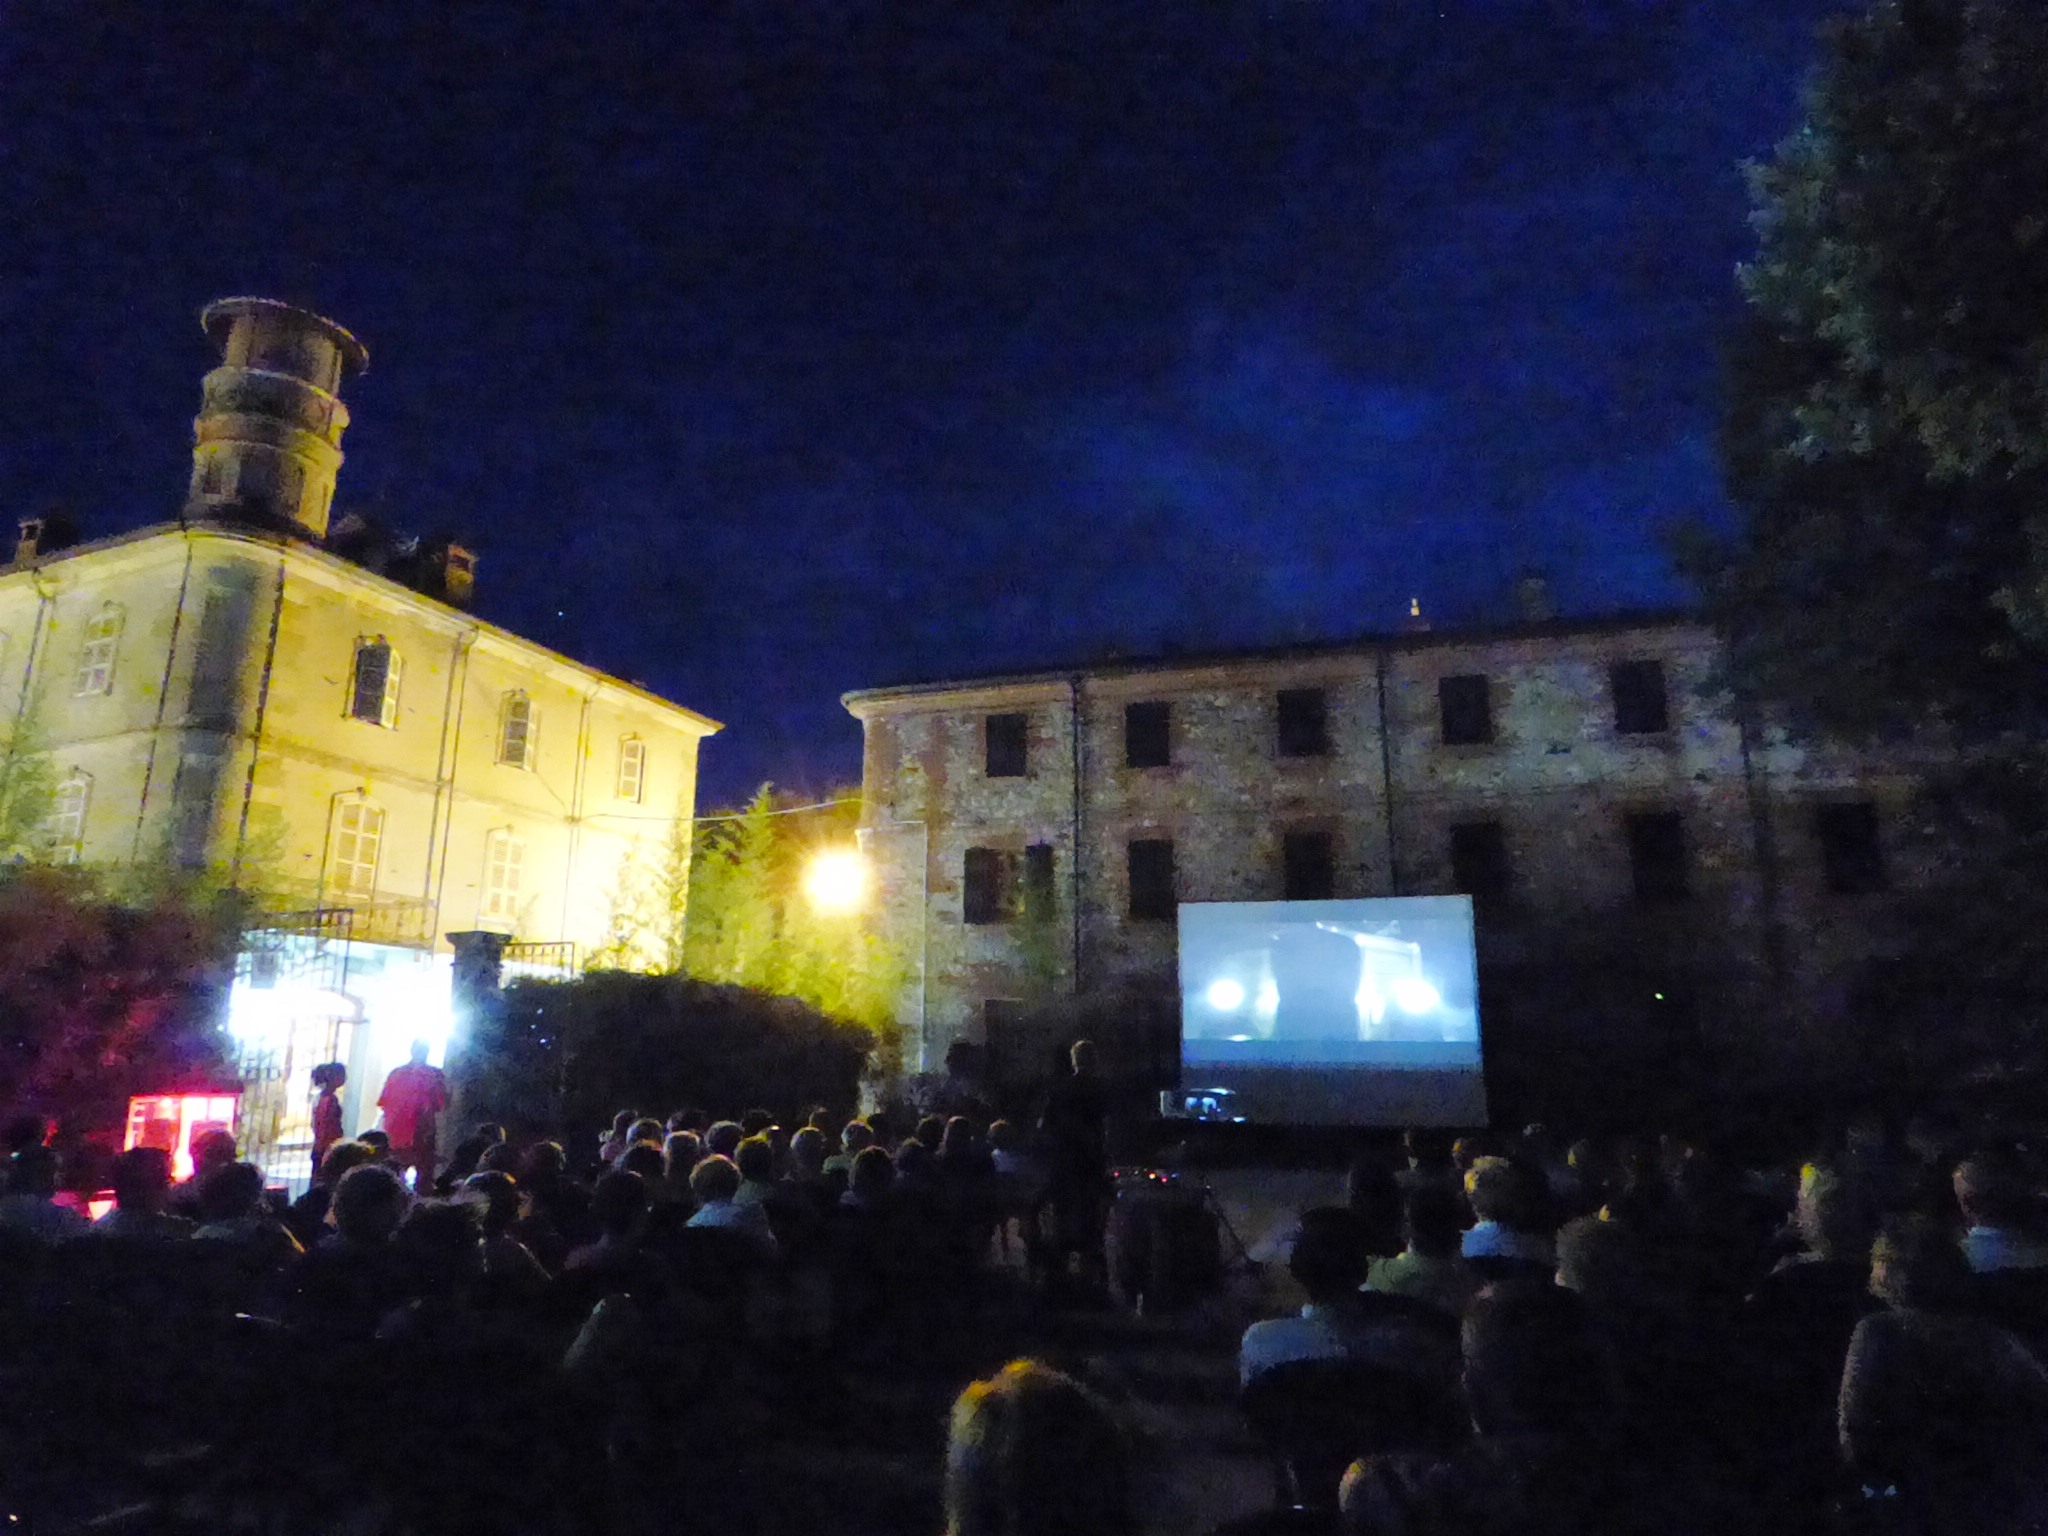 Rivergaro: cinema sotto le stelle 4 agosto 2016